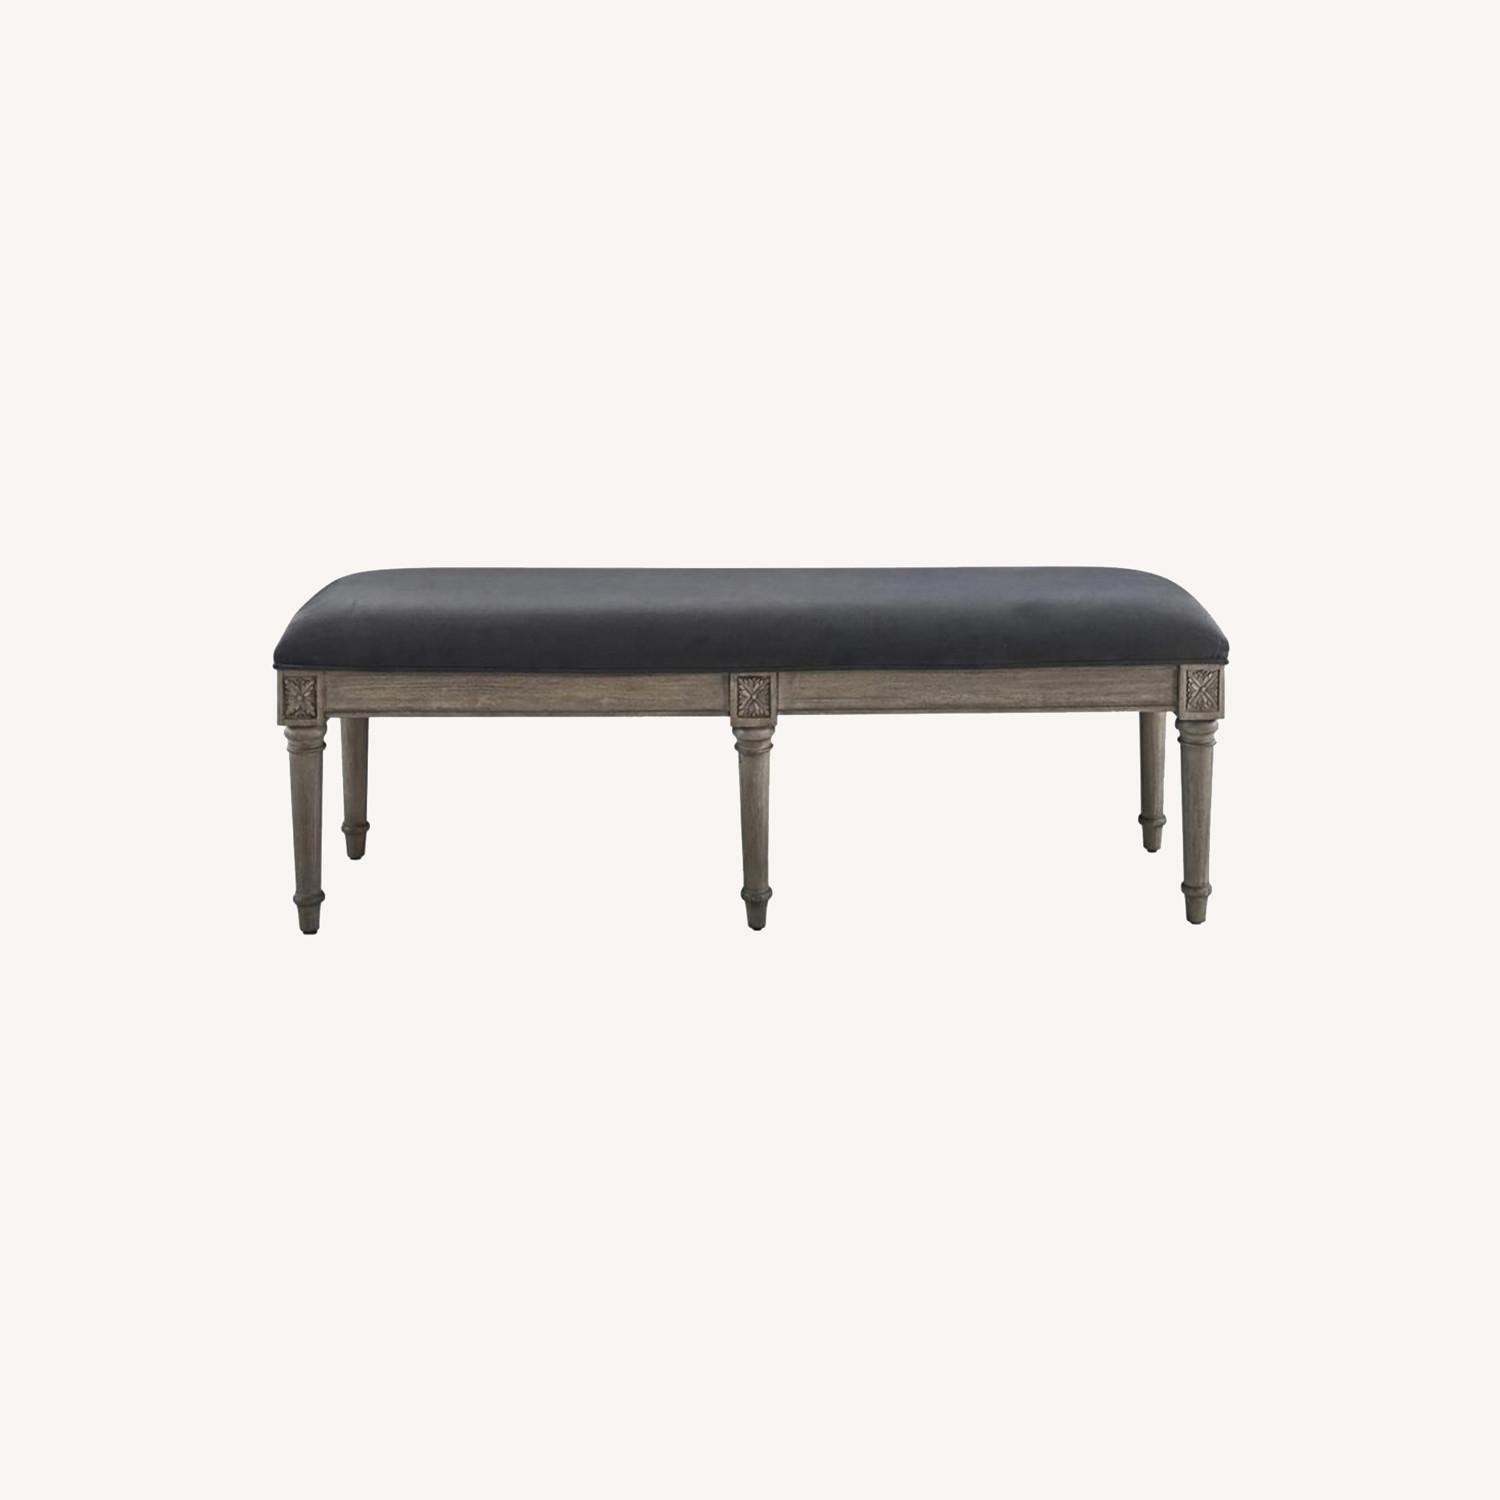 Bench In Grey Upholstery W/ Natural Wood Legs - image-3